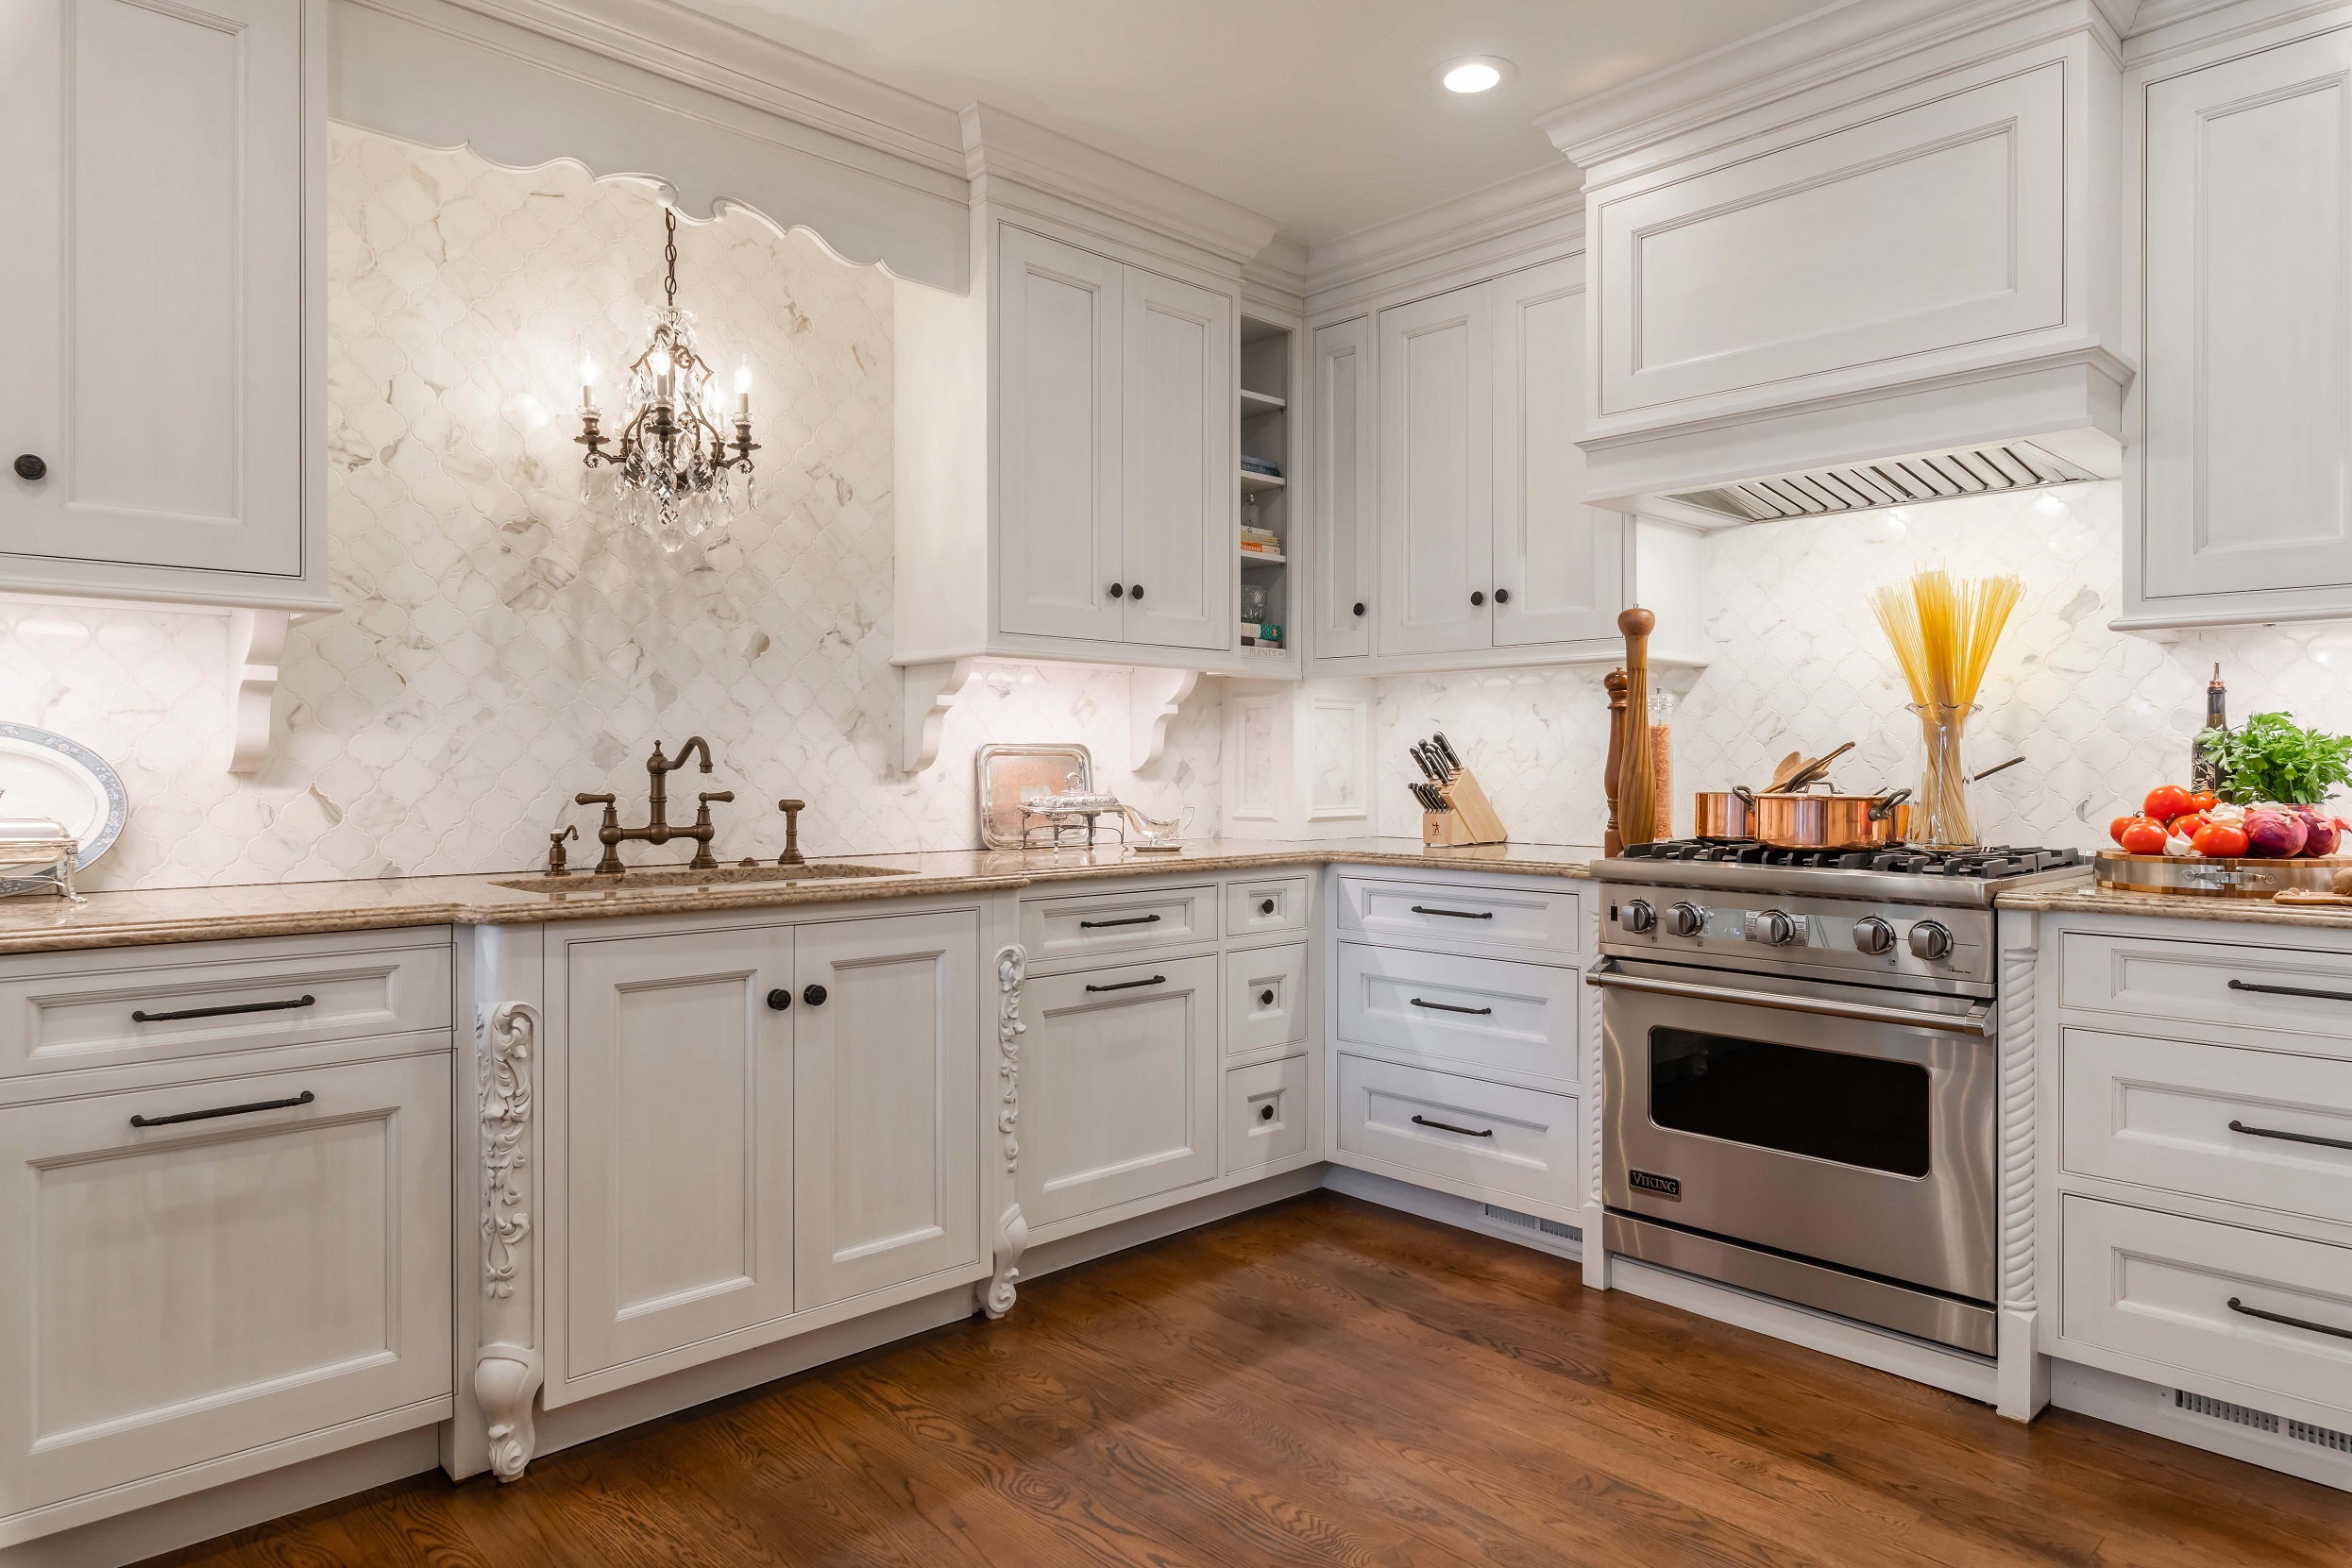 interior-design-remodel-new-build-construction-washington-d-c-san-fransisco-10-min.jpg